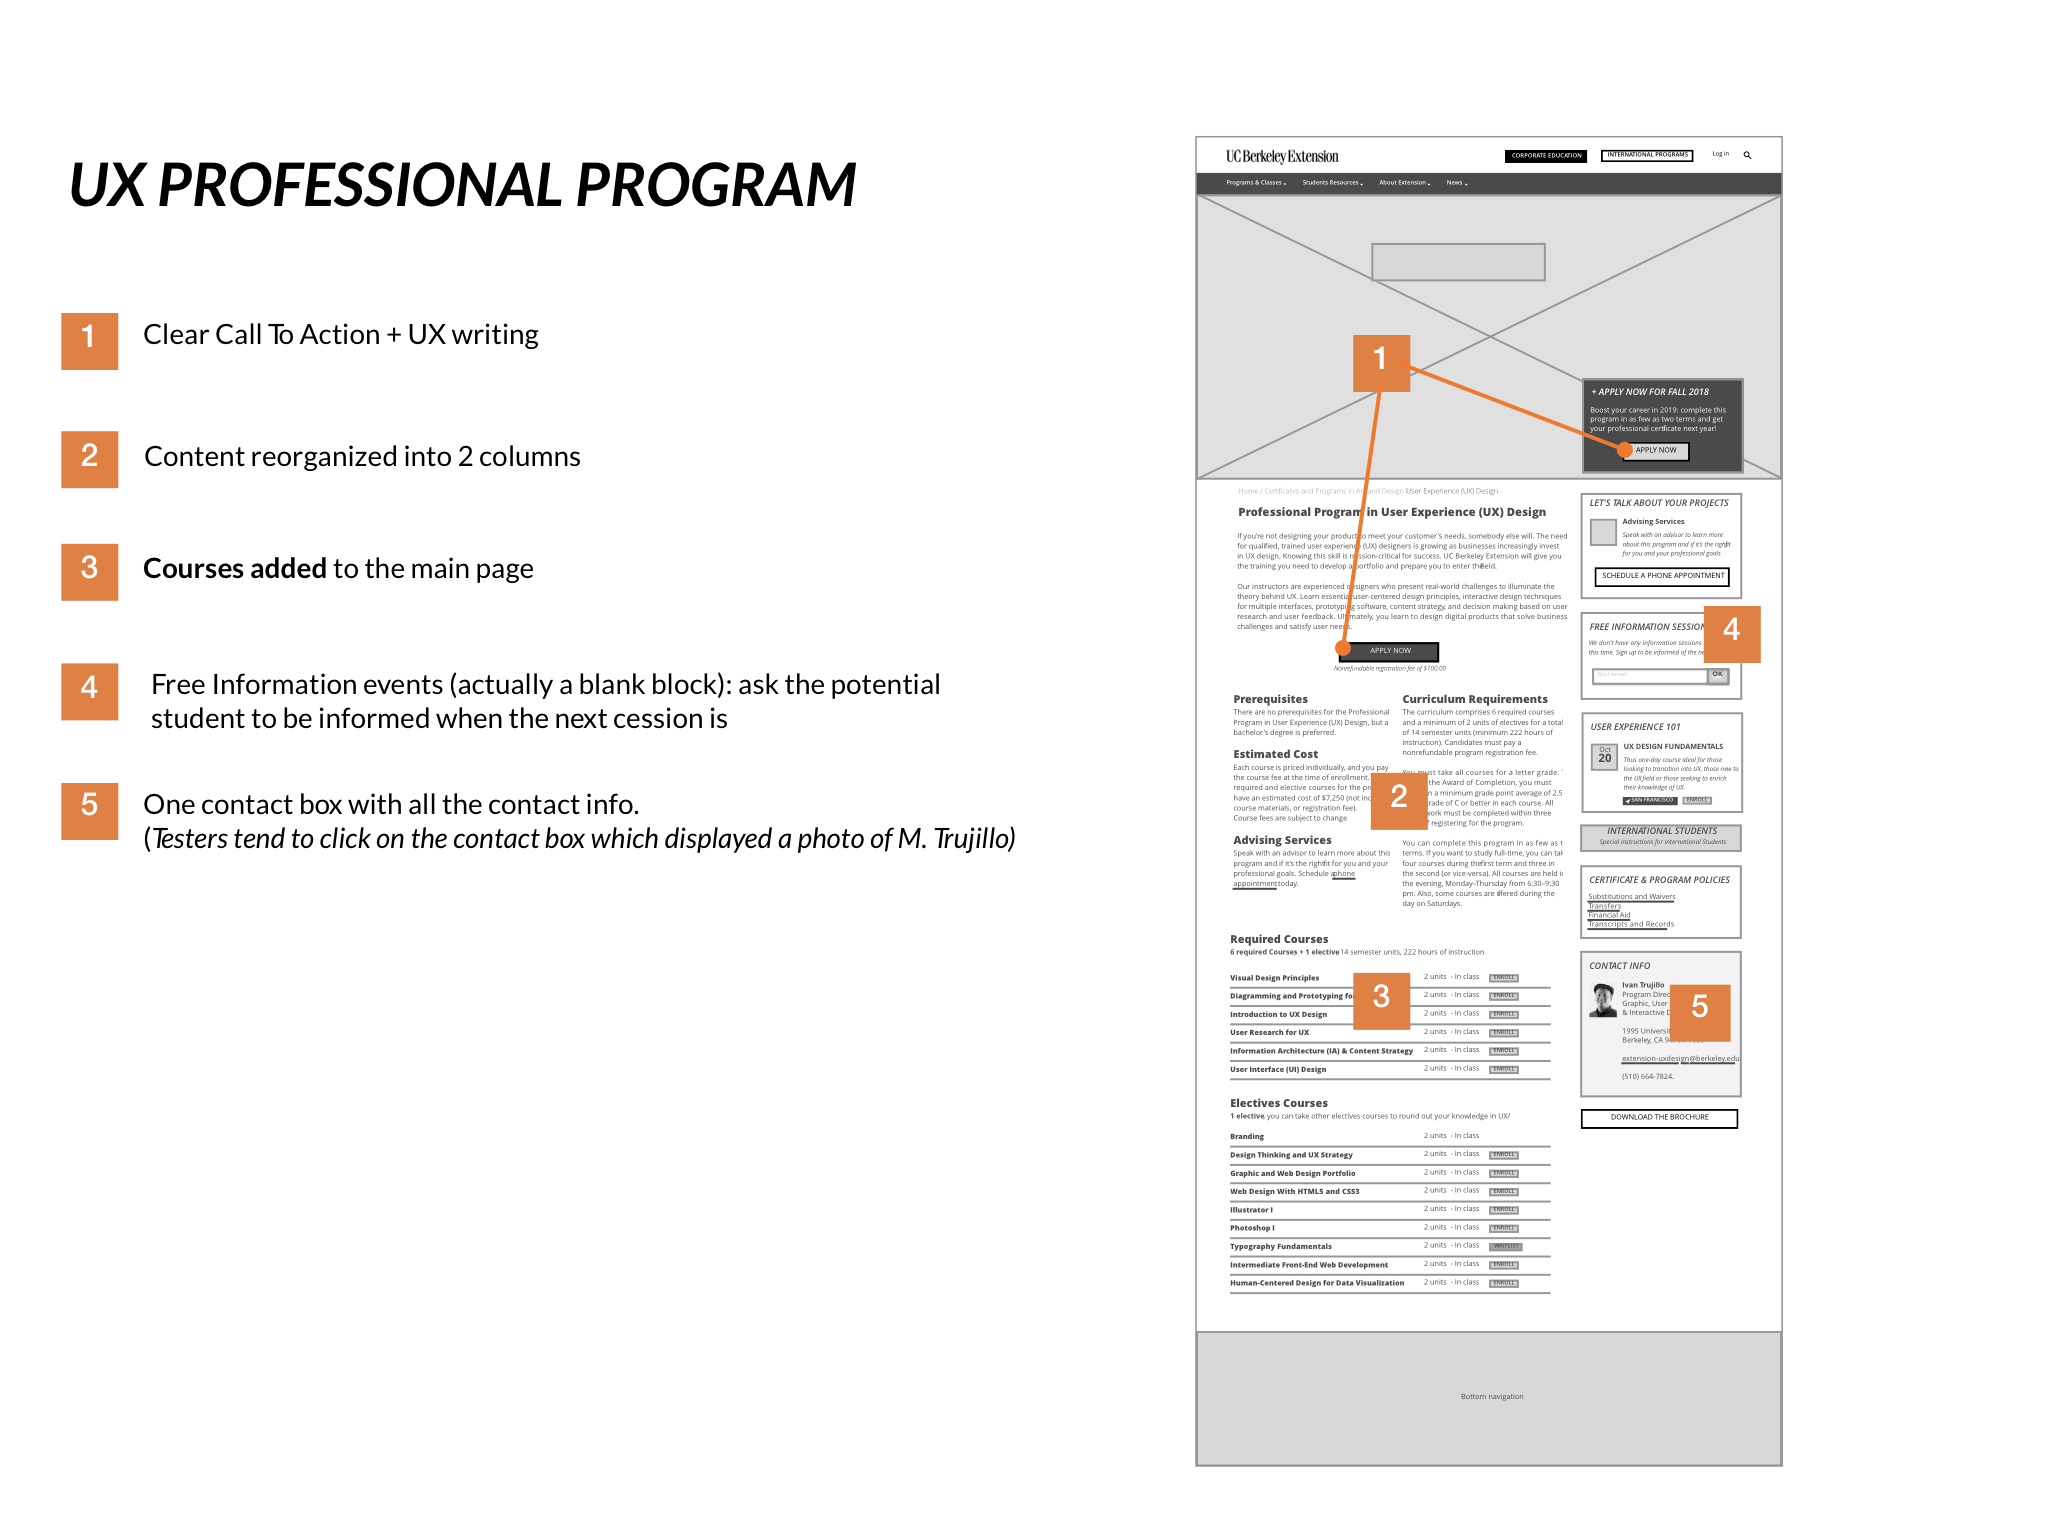 First version of prototype of the UX professional program page